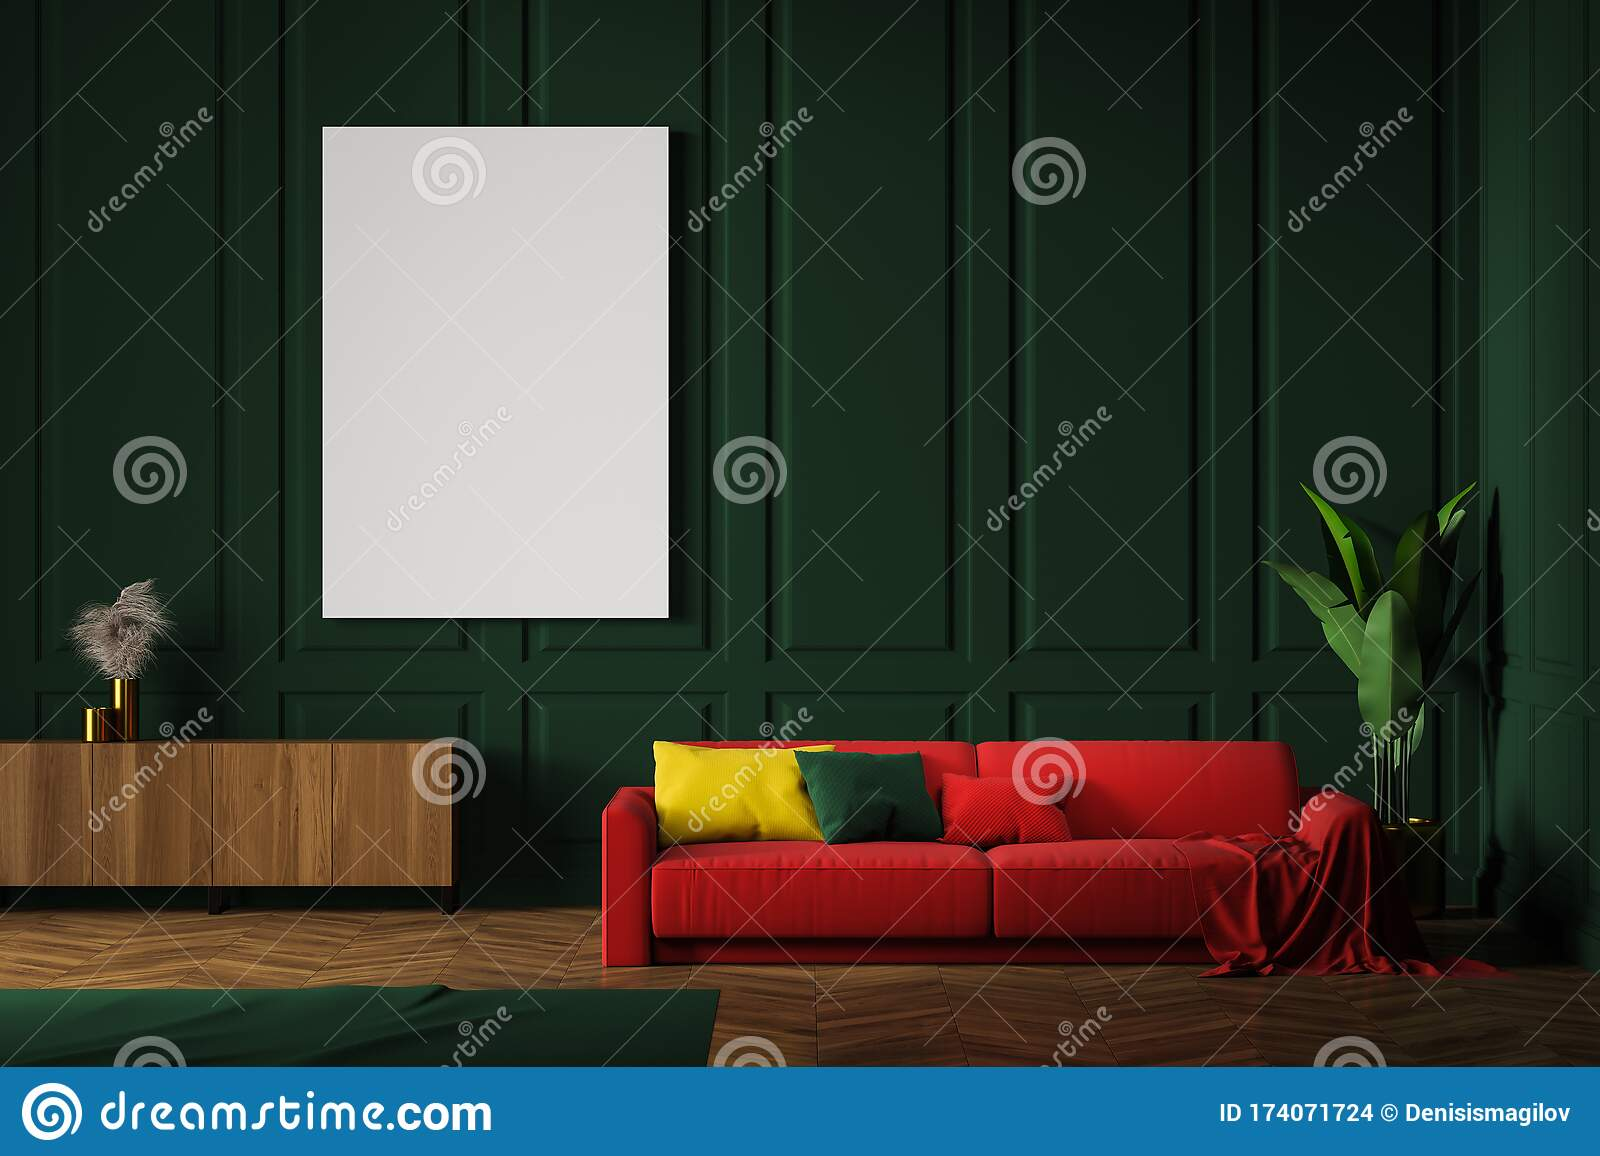 Green Living Room With Red Sofa And Poster Stock Illustration Illustration Of Minimal Luxury 174071724